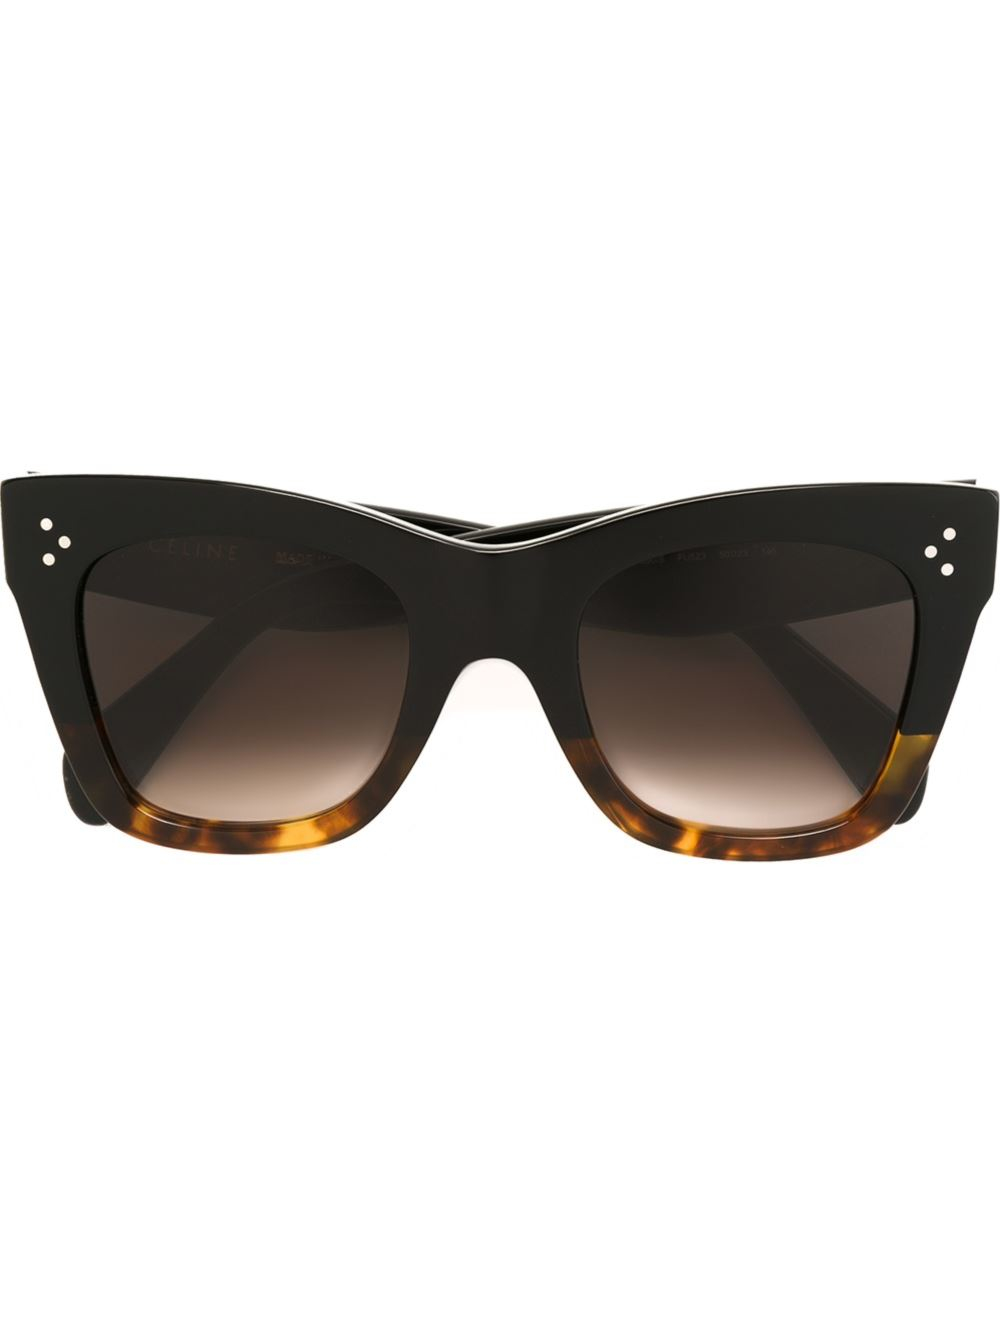 Celine Gold Frame Sunglasses : Celine Contrast Frame Cat Eye Sunglasses in Black (BROWN ...